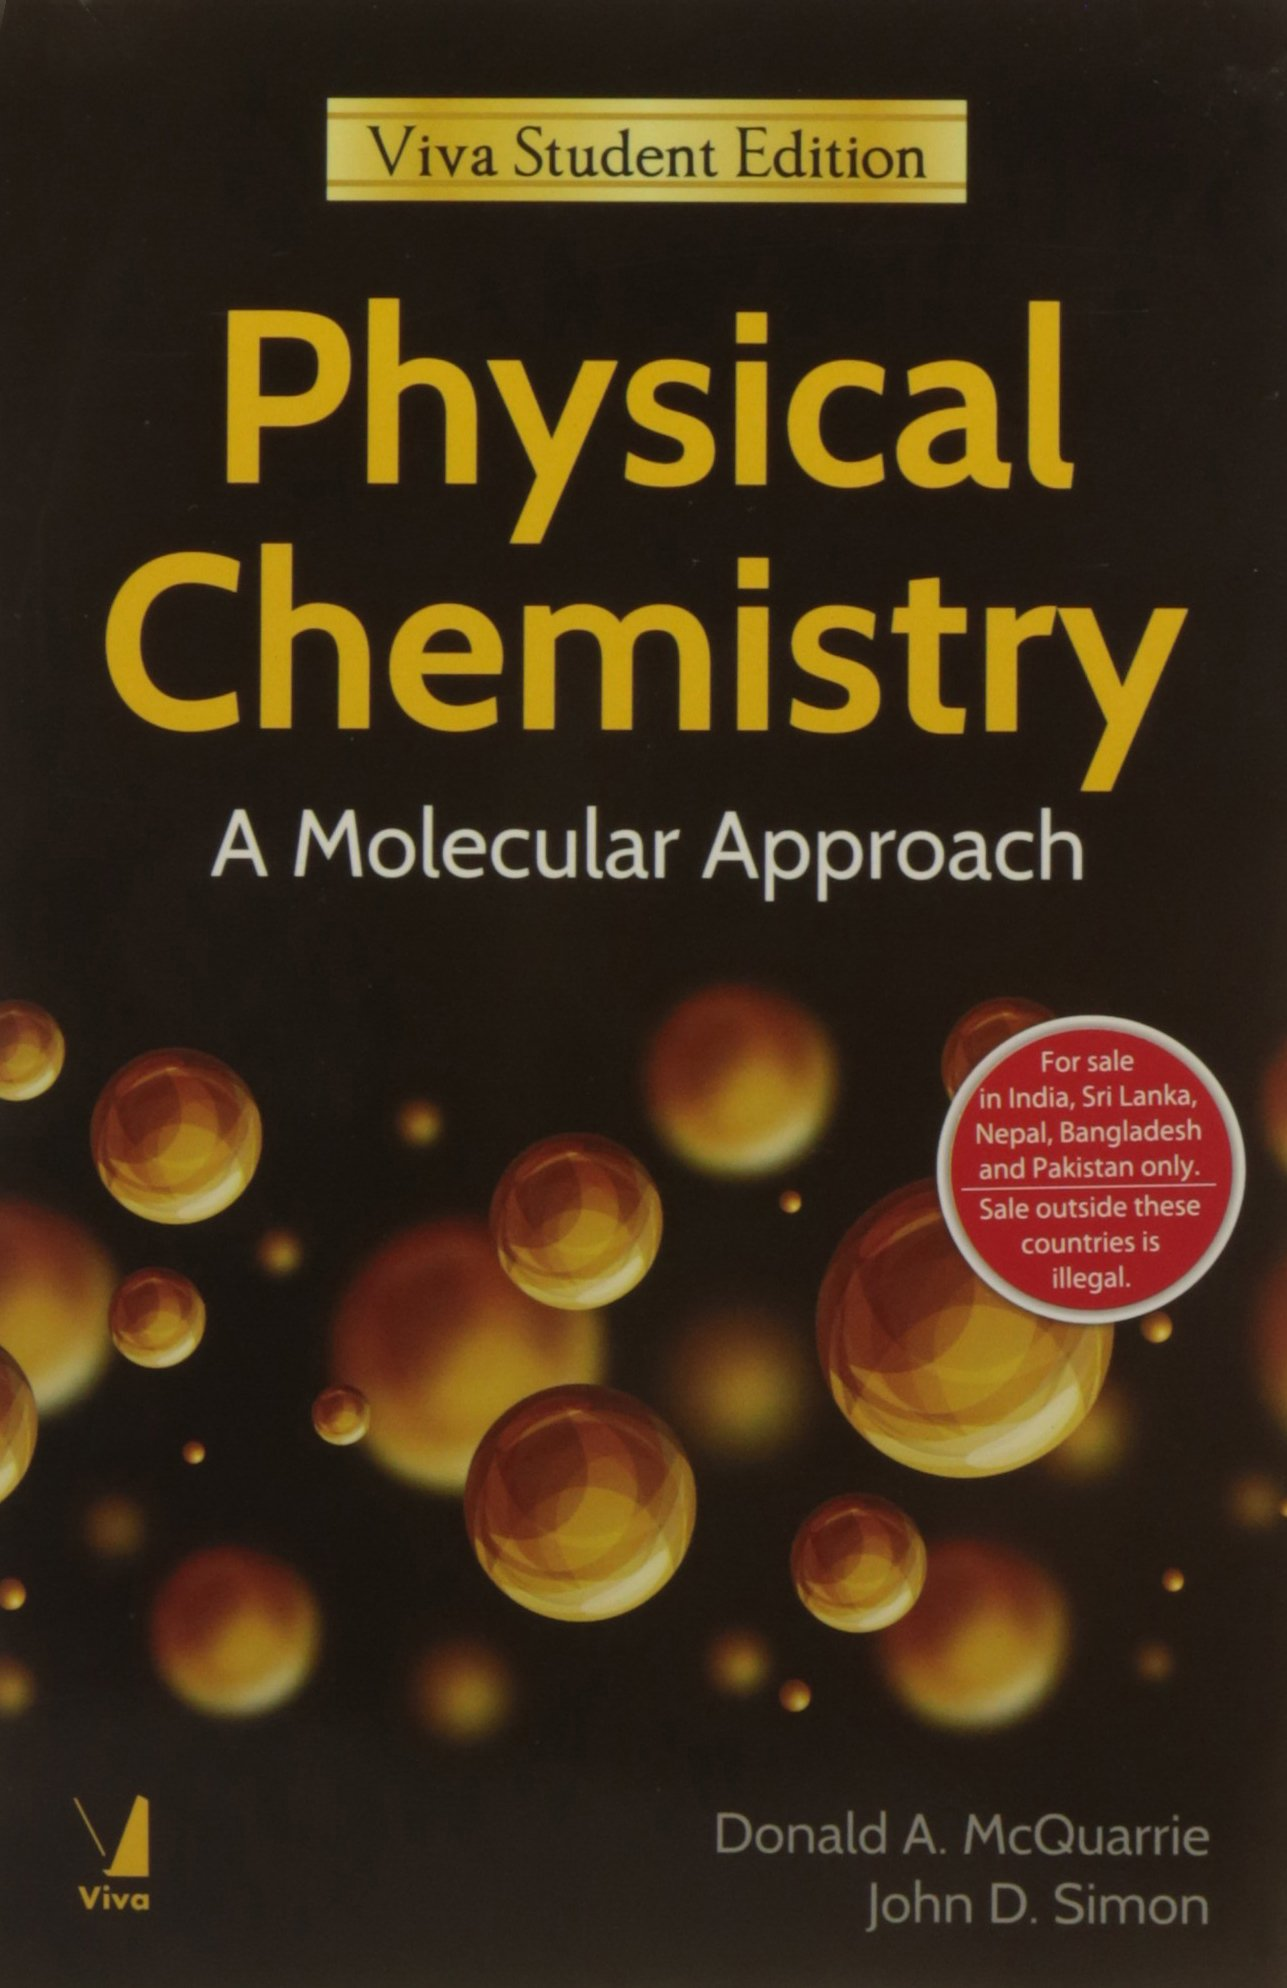 Physical Chemistry a Molecular Approach: Donald A. McQuarrie:  9788130919195: Amazon.com: Books